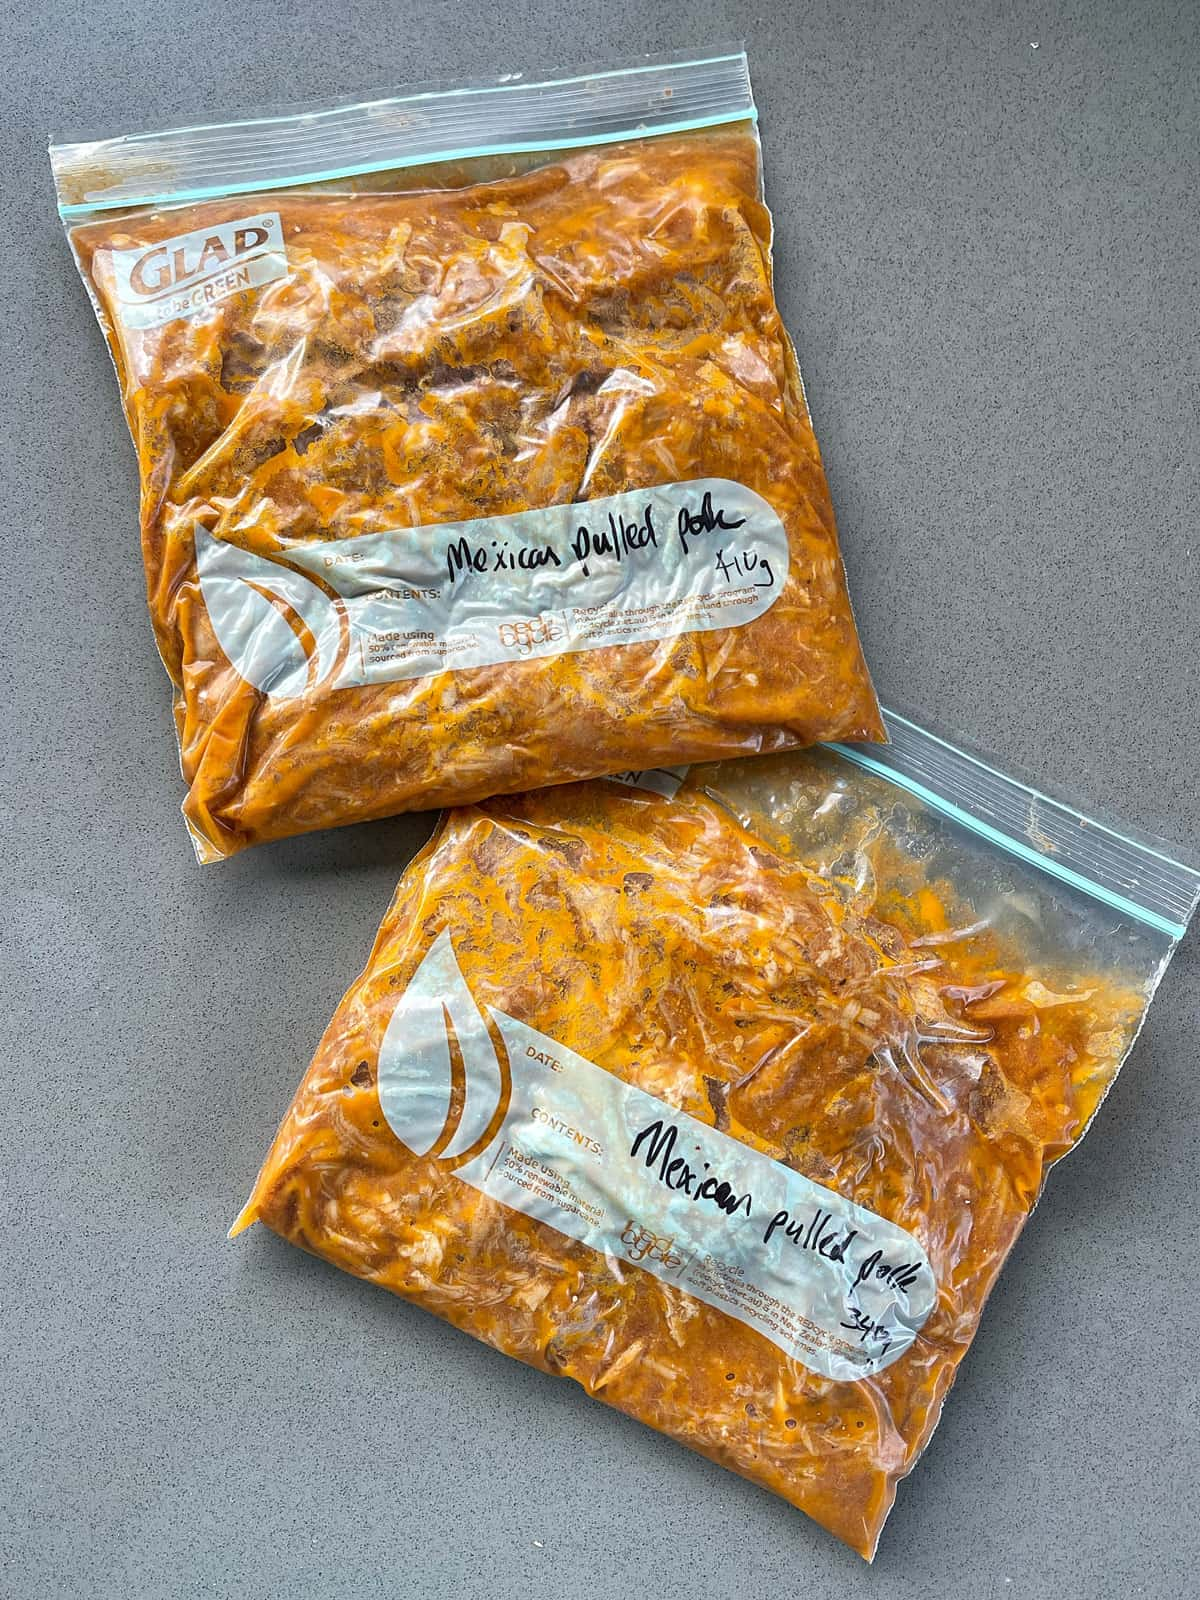 Two ziplock bags of Slow Cooker Mexican Pulled Pork on a grey bench.